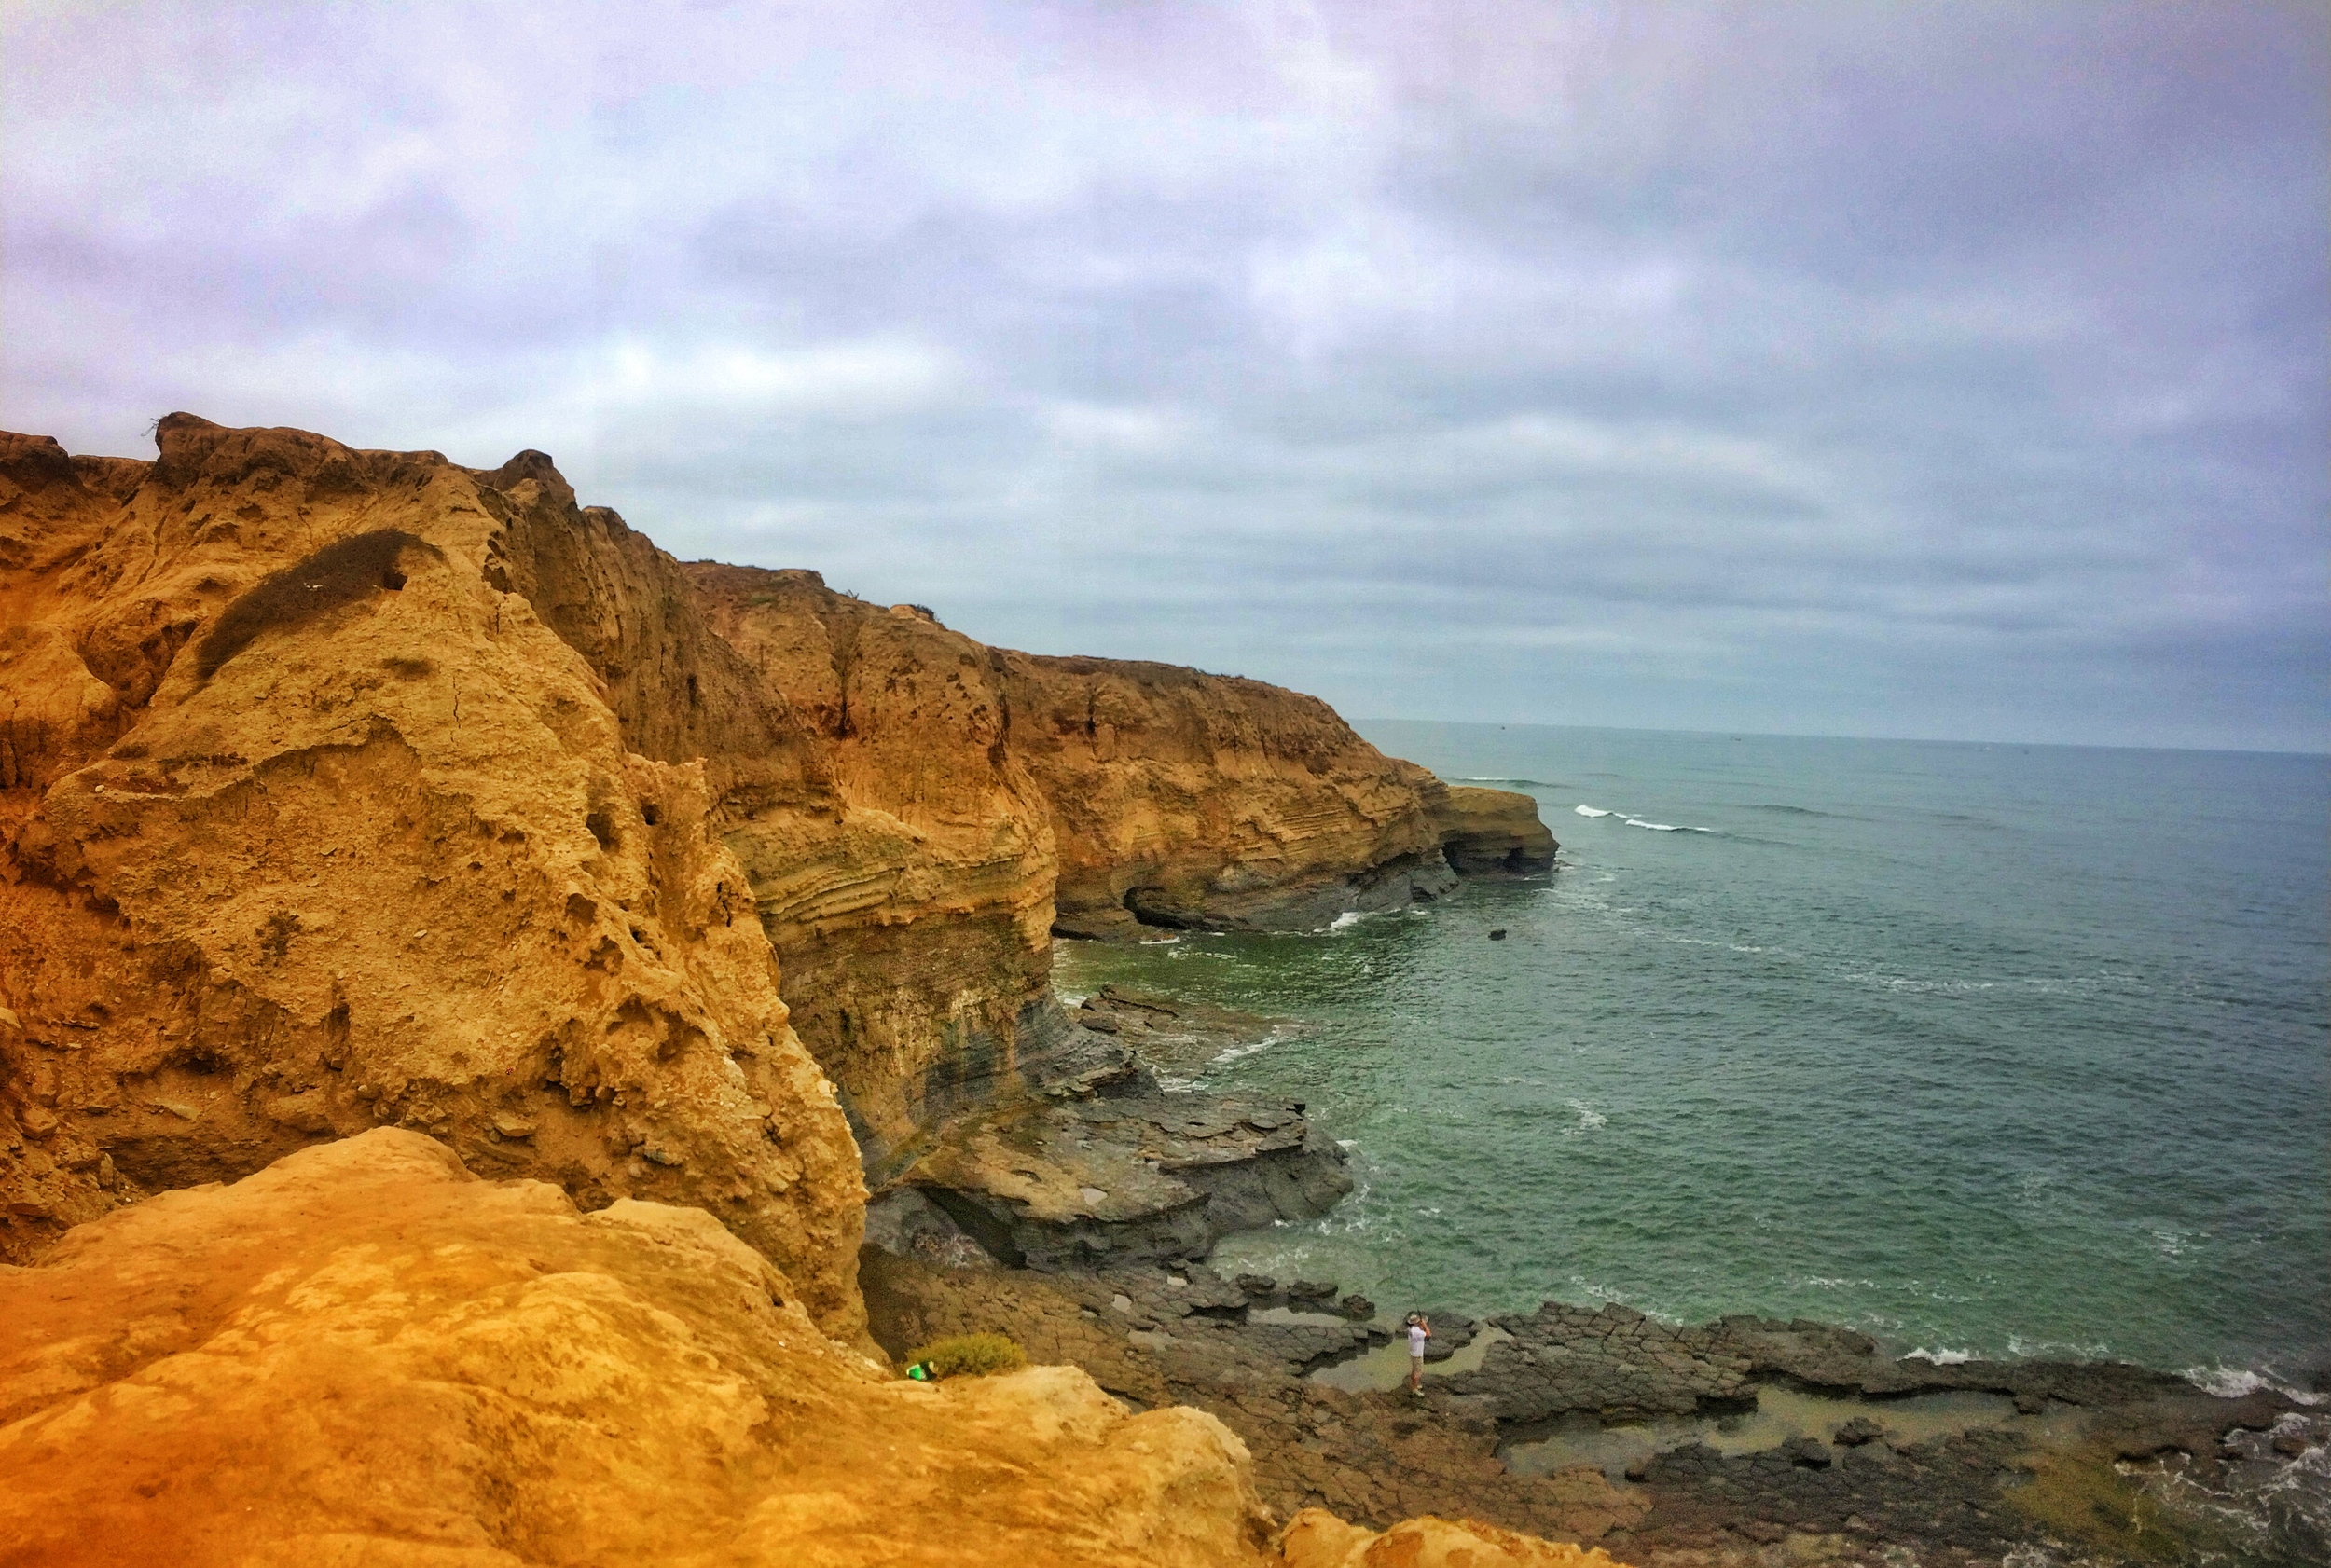 Sunset Cliffs is a great place to explore, and to watch the sunset.